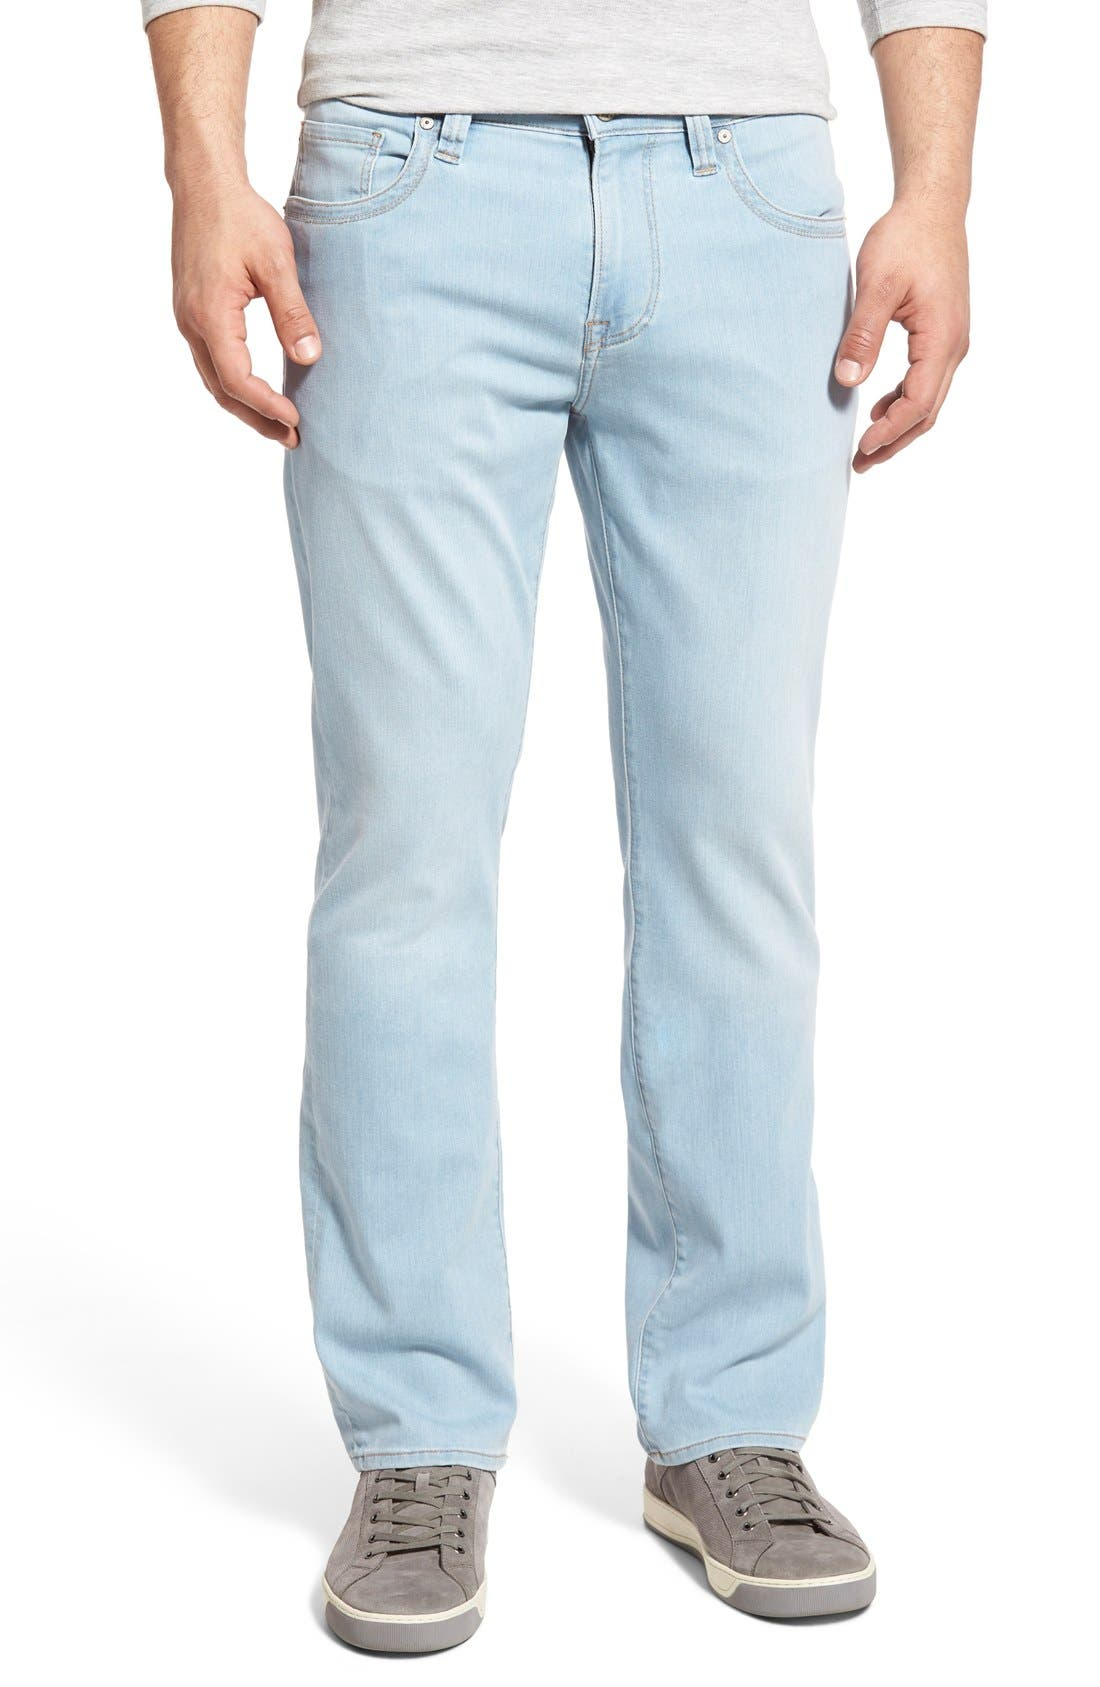 34 Heritage 'Charisma' Relaxed Fit Jeans (Bleach Hawaii) (Regular & Tall)